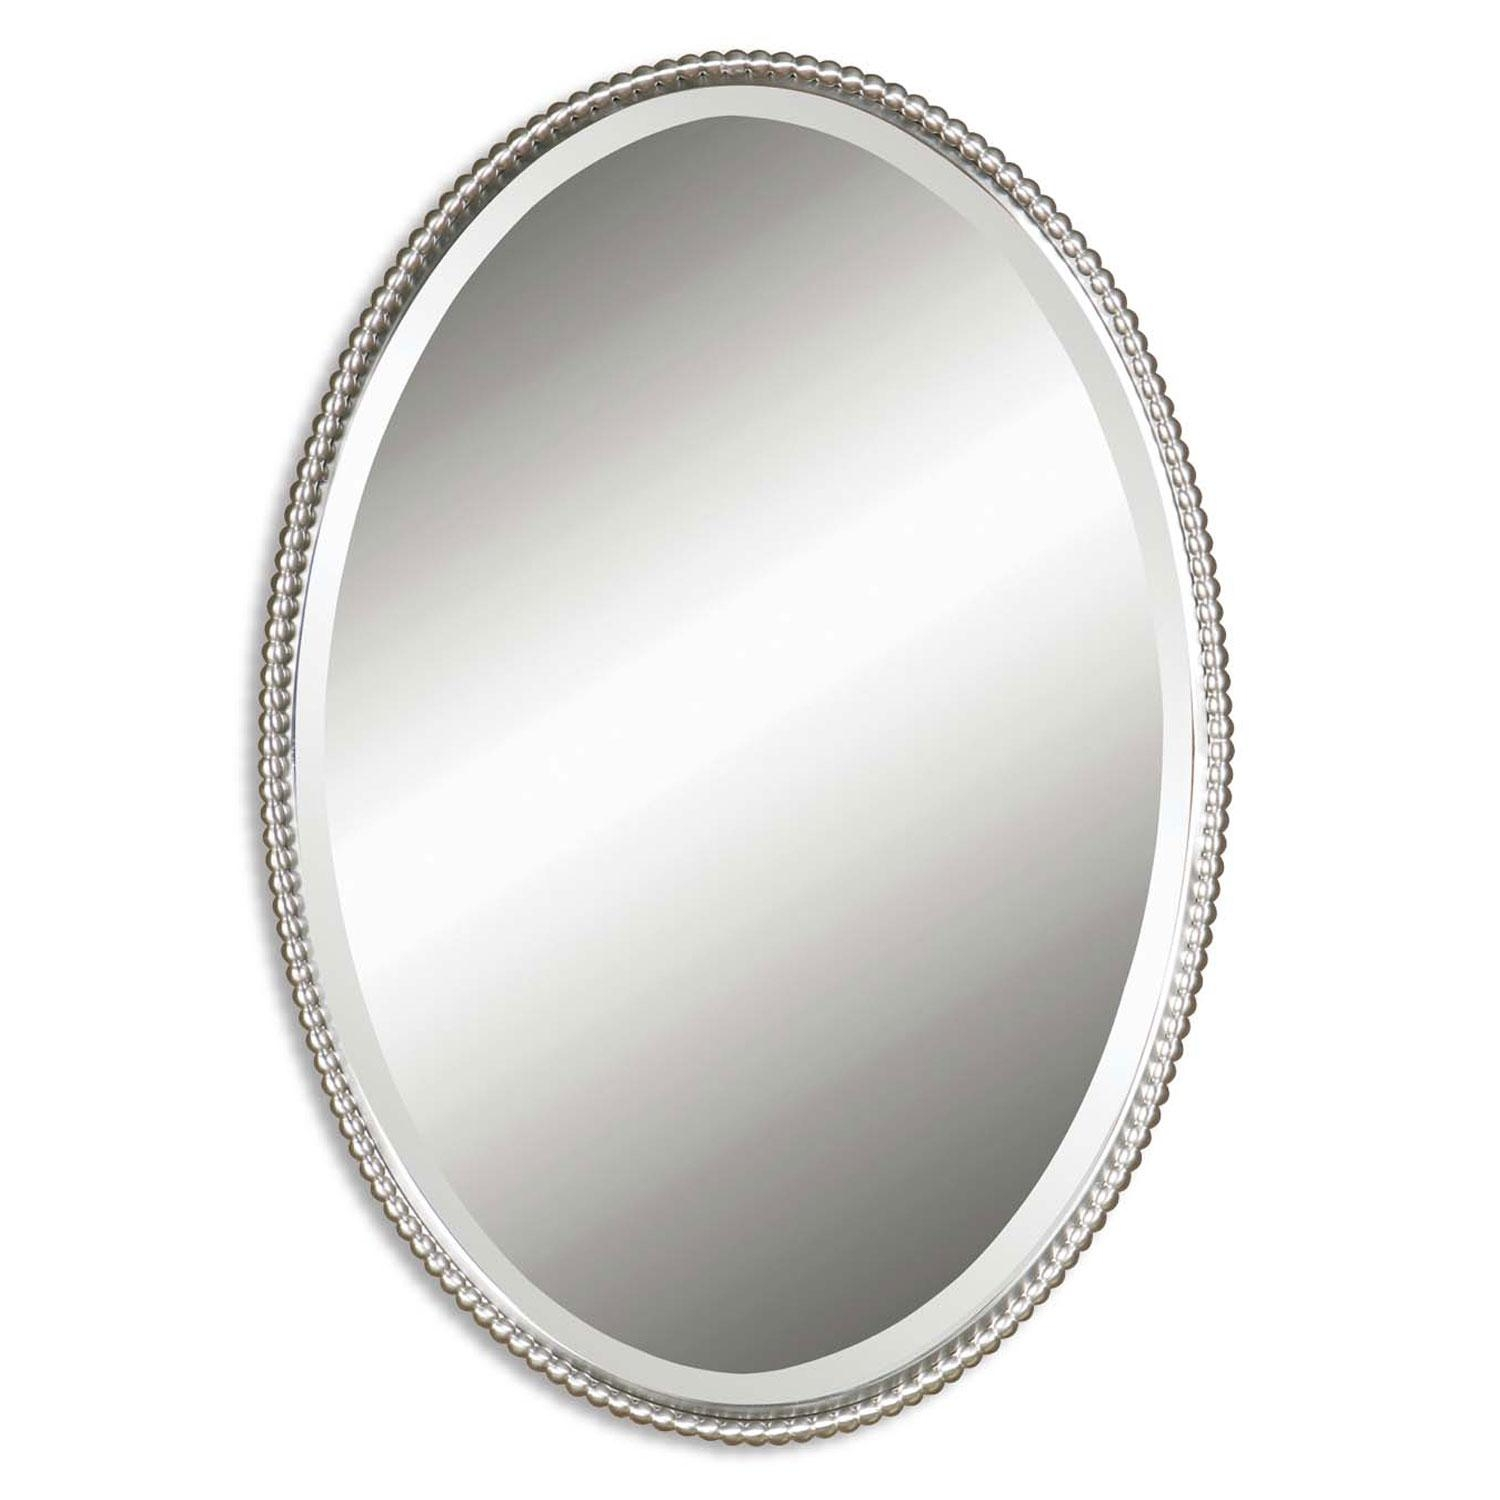 Sherise Brushed Nickel Oval Mirror Uttermost Wall Mirror Mirrors Within Large Oval Mirror (Photo 4 of 20)